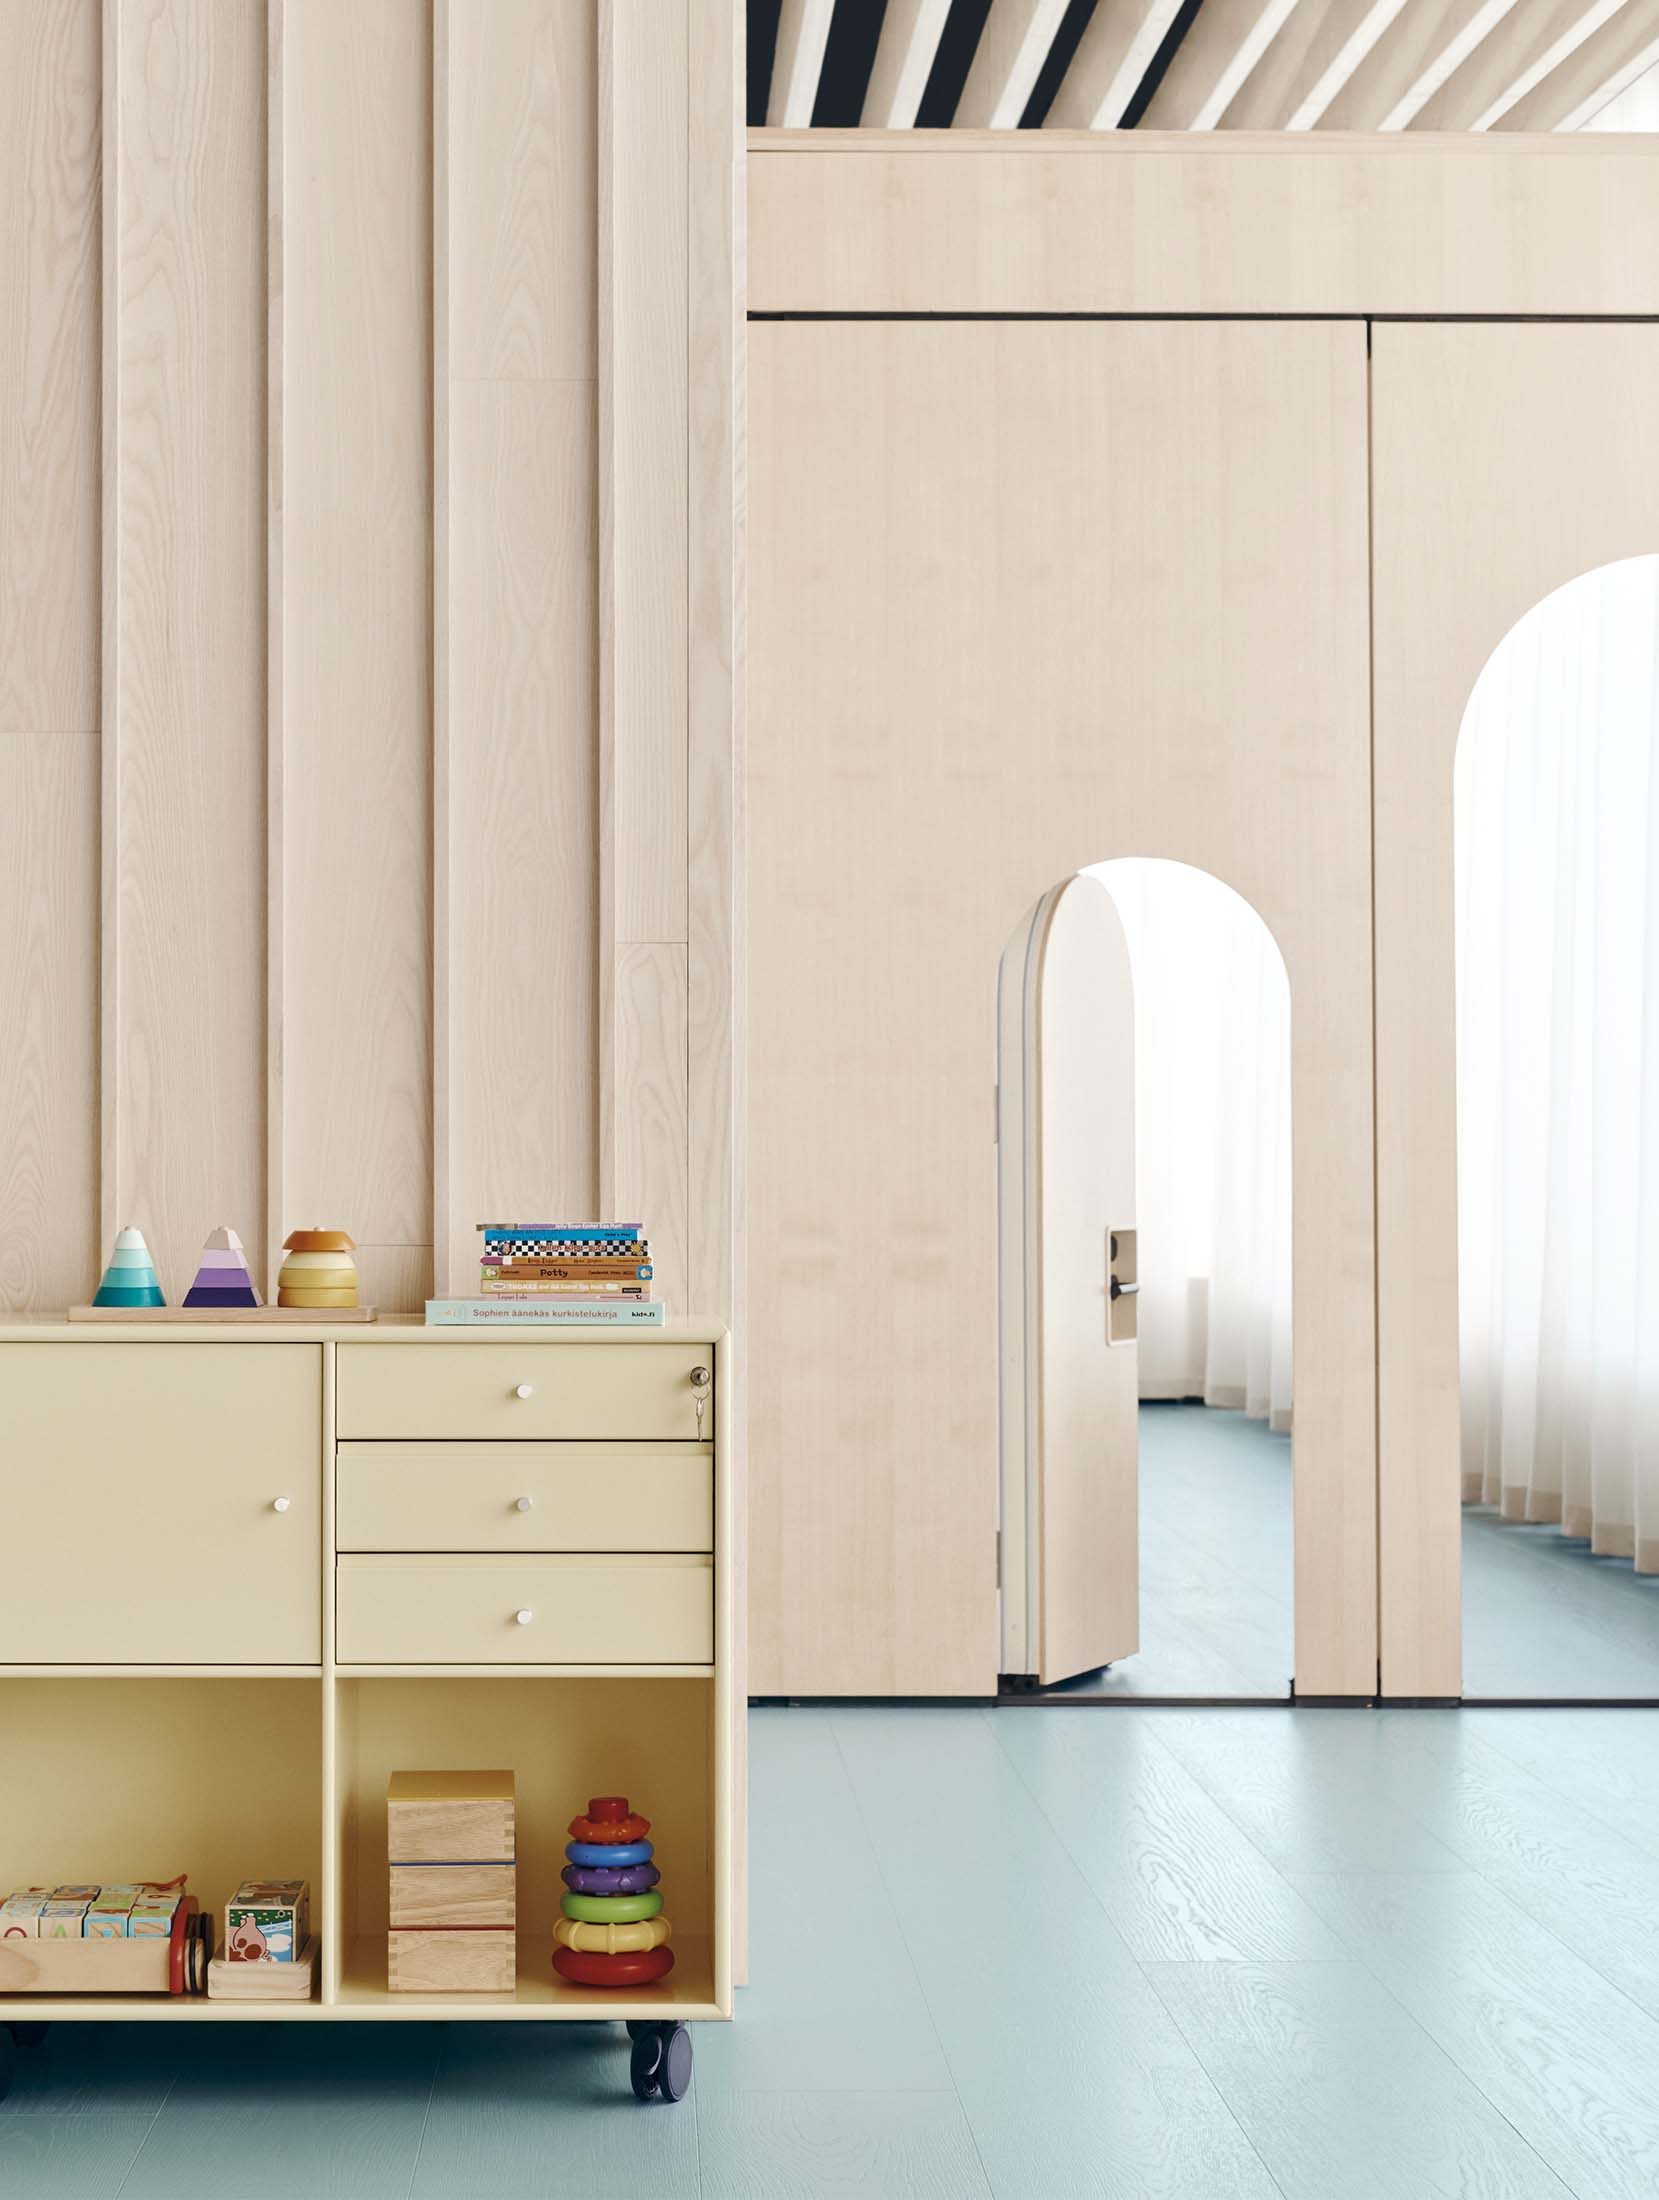 New Nordic School by the Sea doors and storage for toys